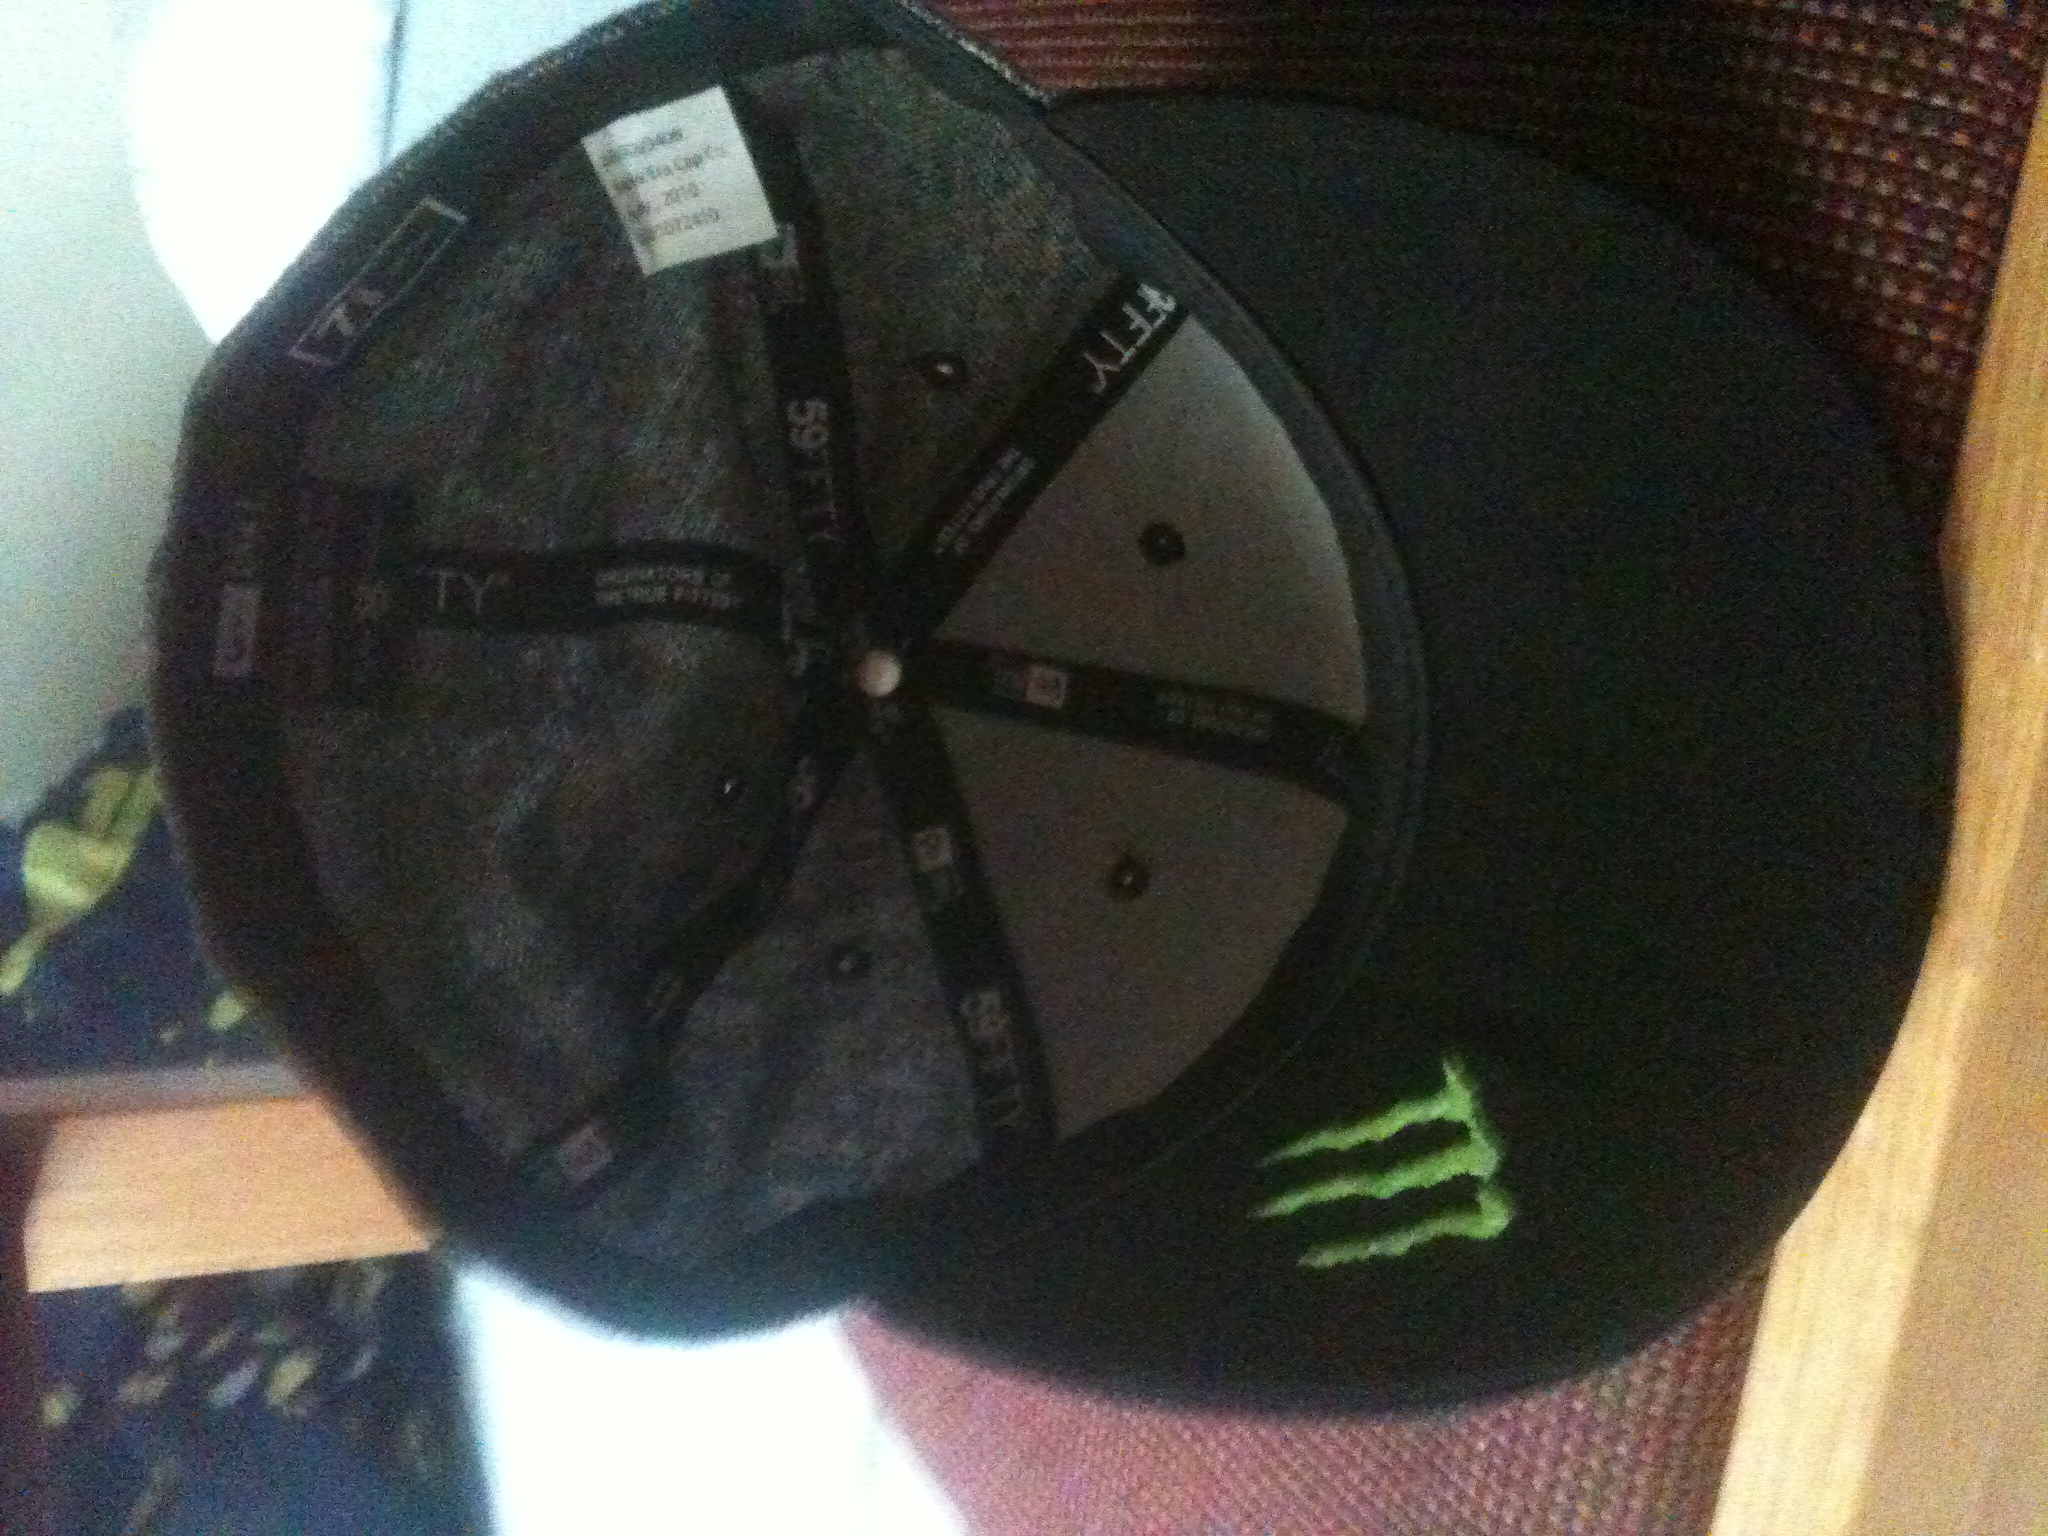 Monster Energy Athlete New Era for sale - Sell and Trade - Newschoolers.com cc59b7227c02